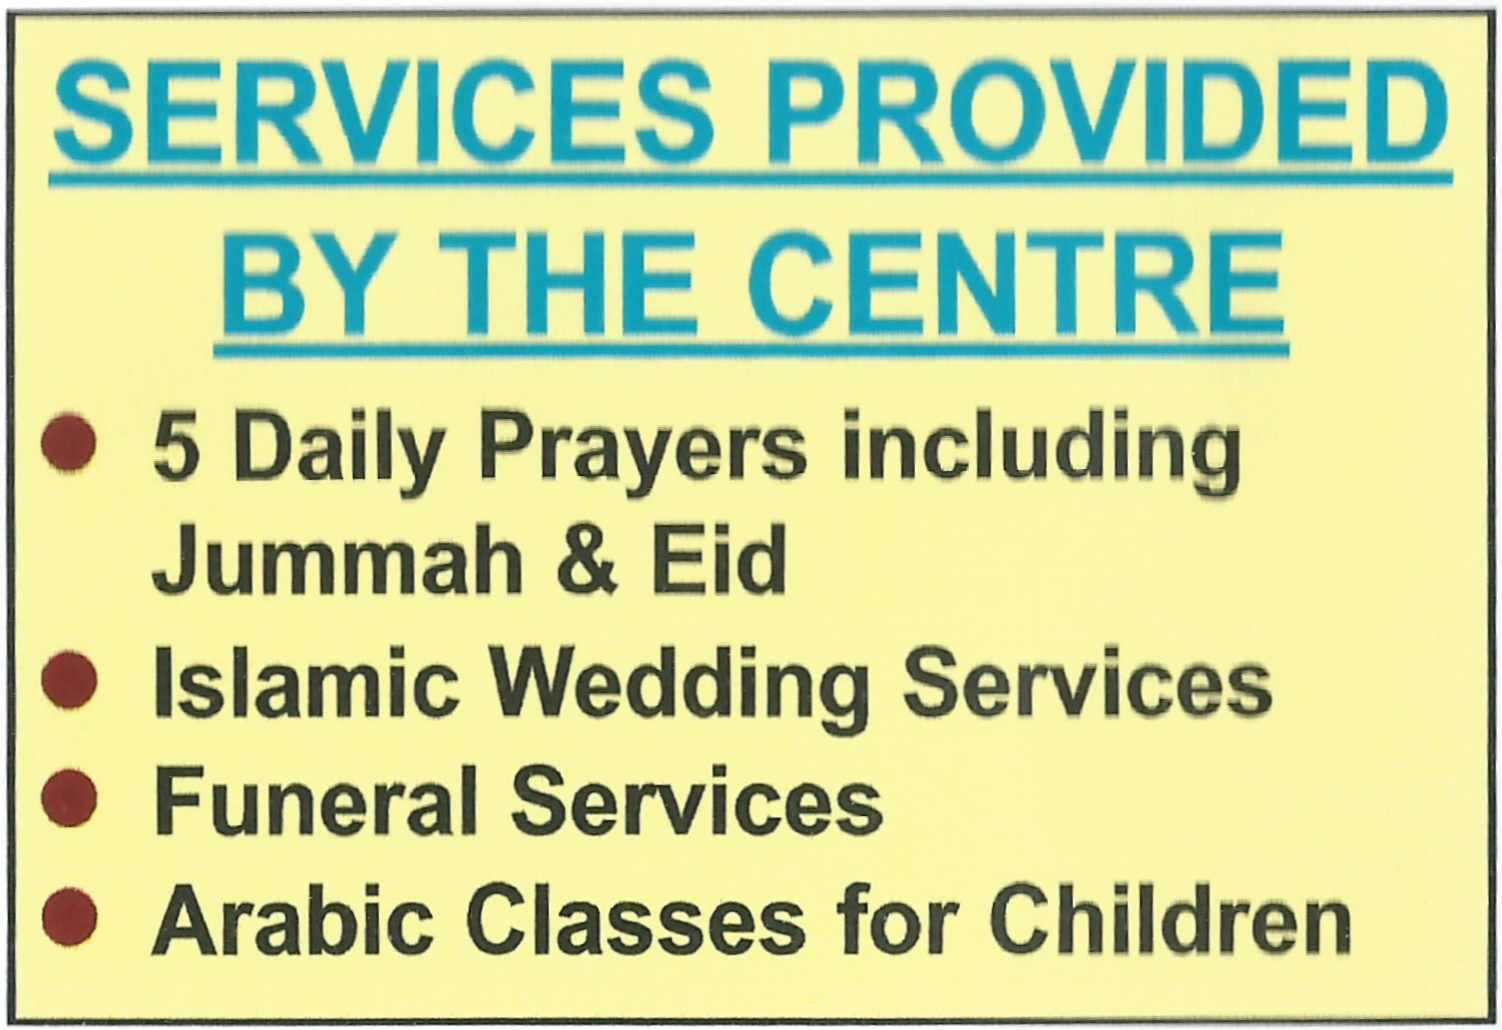 Mid Sussex Islamic Centre & Mosque, fajr, zuhr, asr, maghrib, isha, 5 daily prayers including Jummah & Eid. Islamic Weddings Services, Funeral Services, Arabic Classes for children